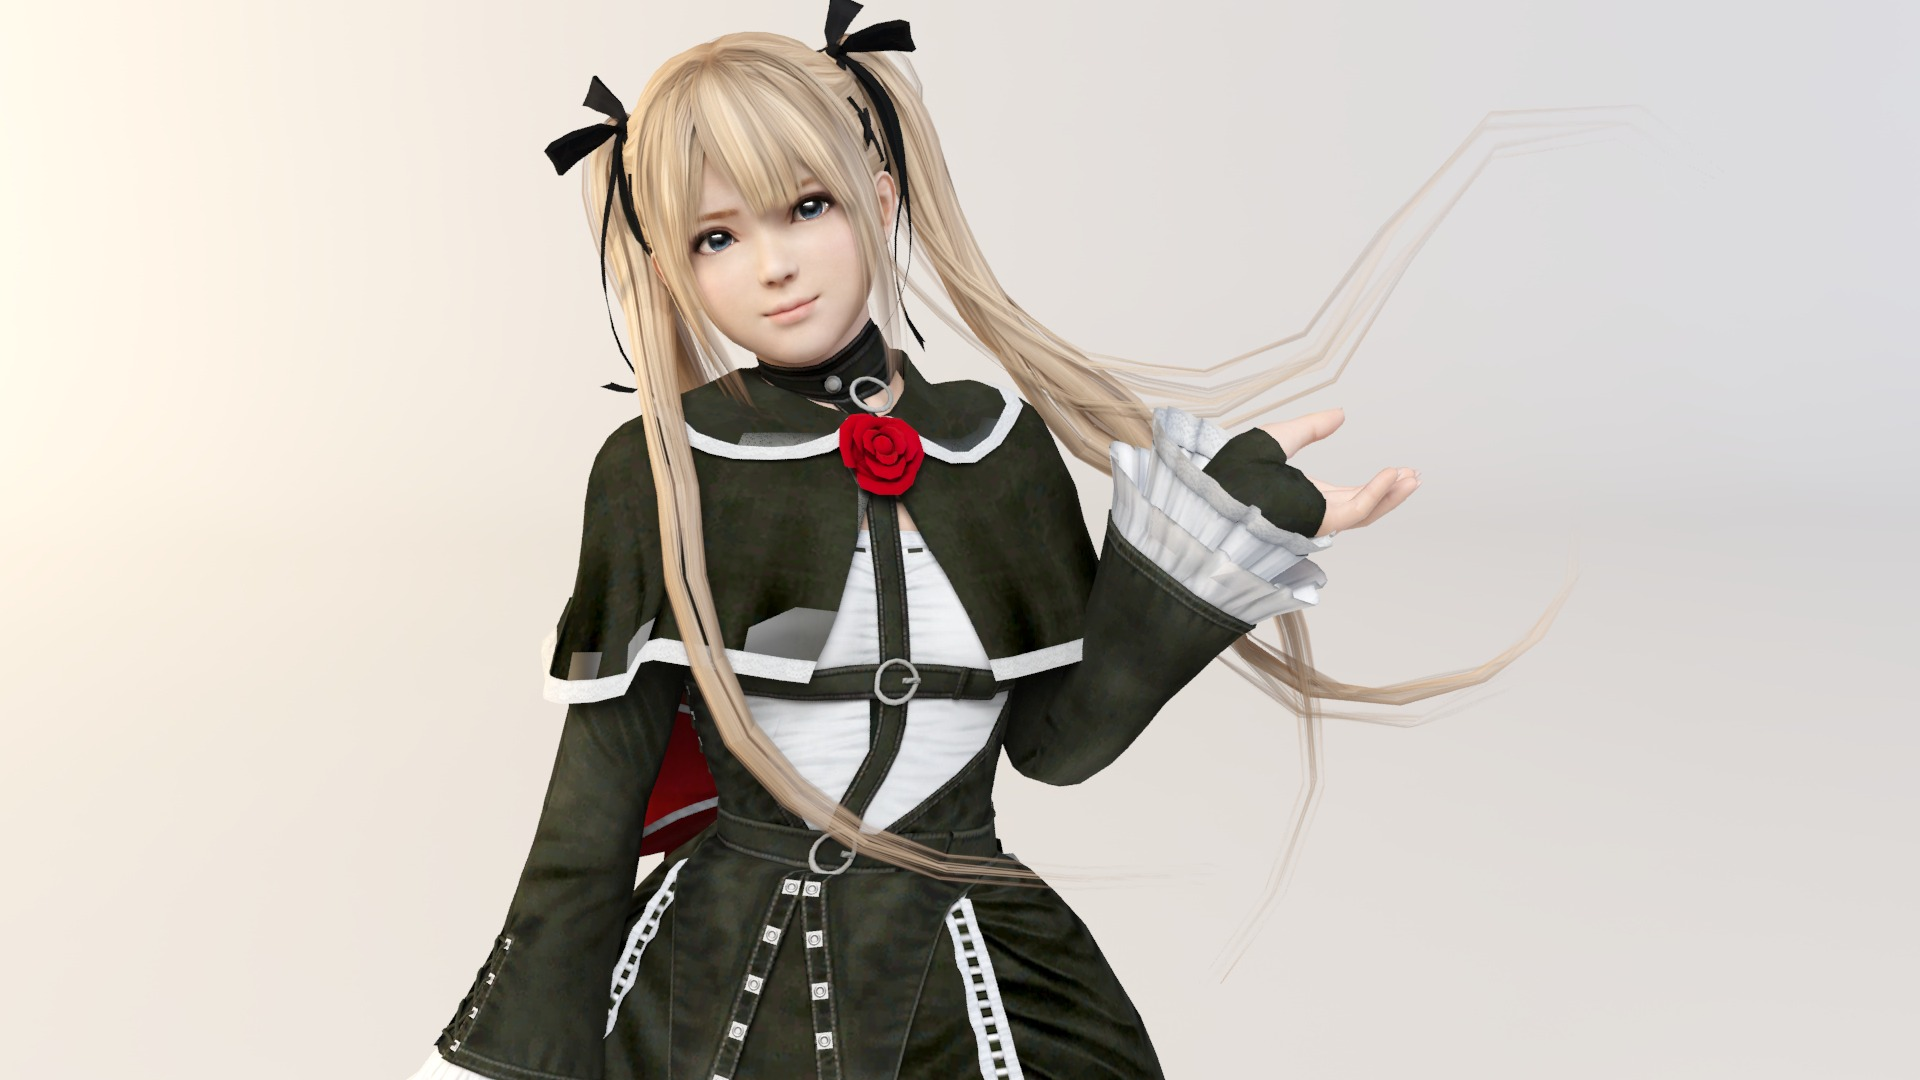 Dead or alive marie rose dirty girl - 2 1